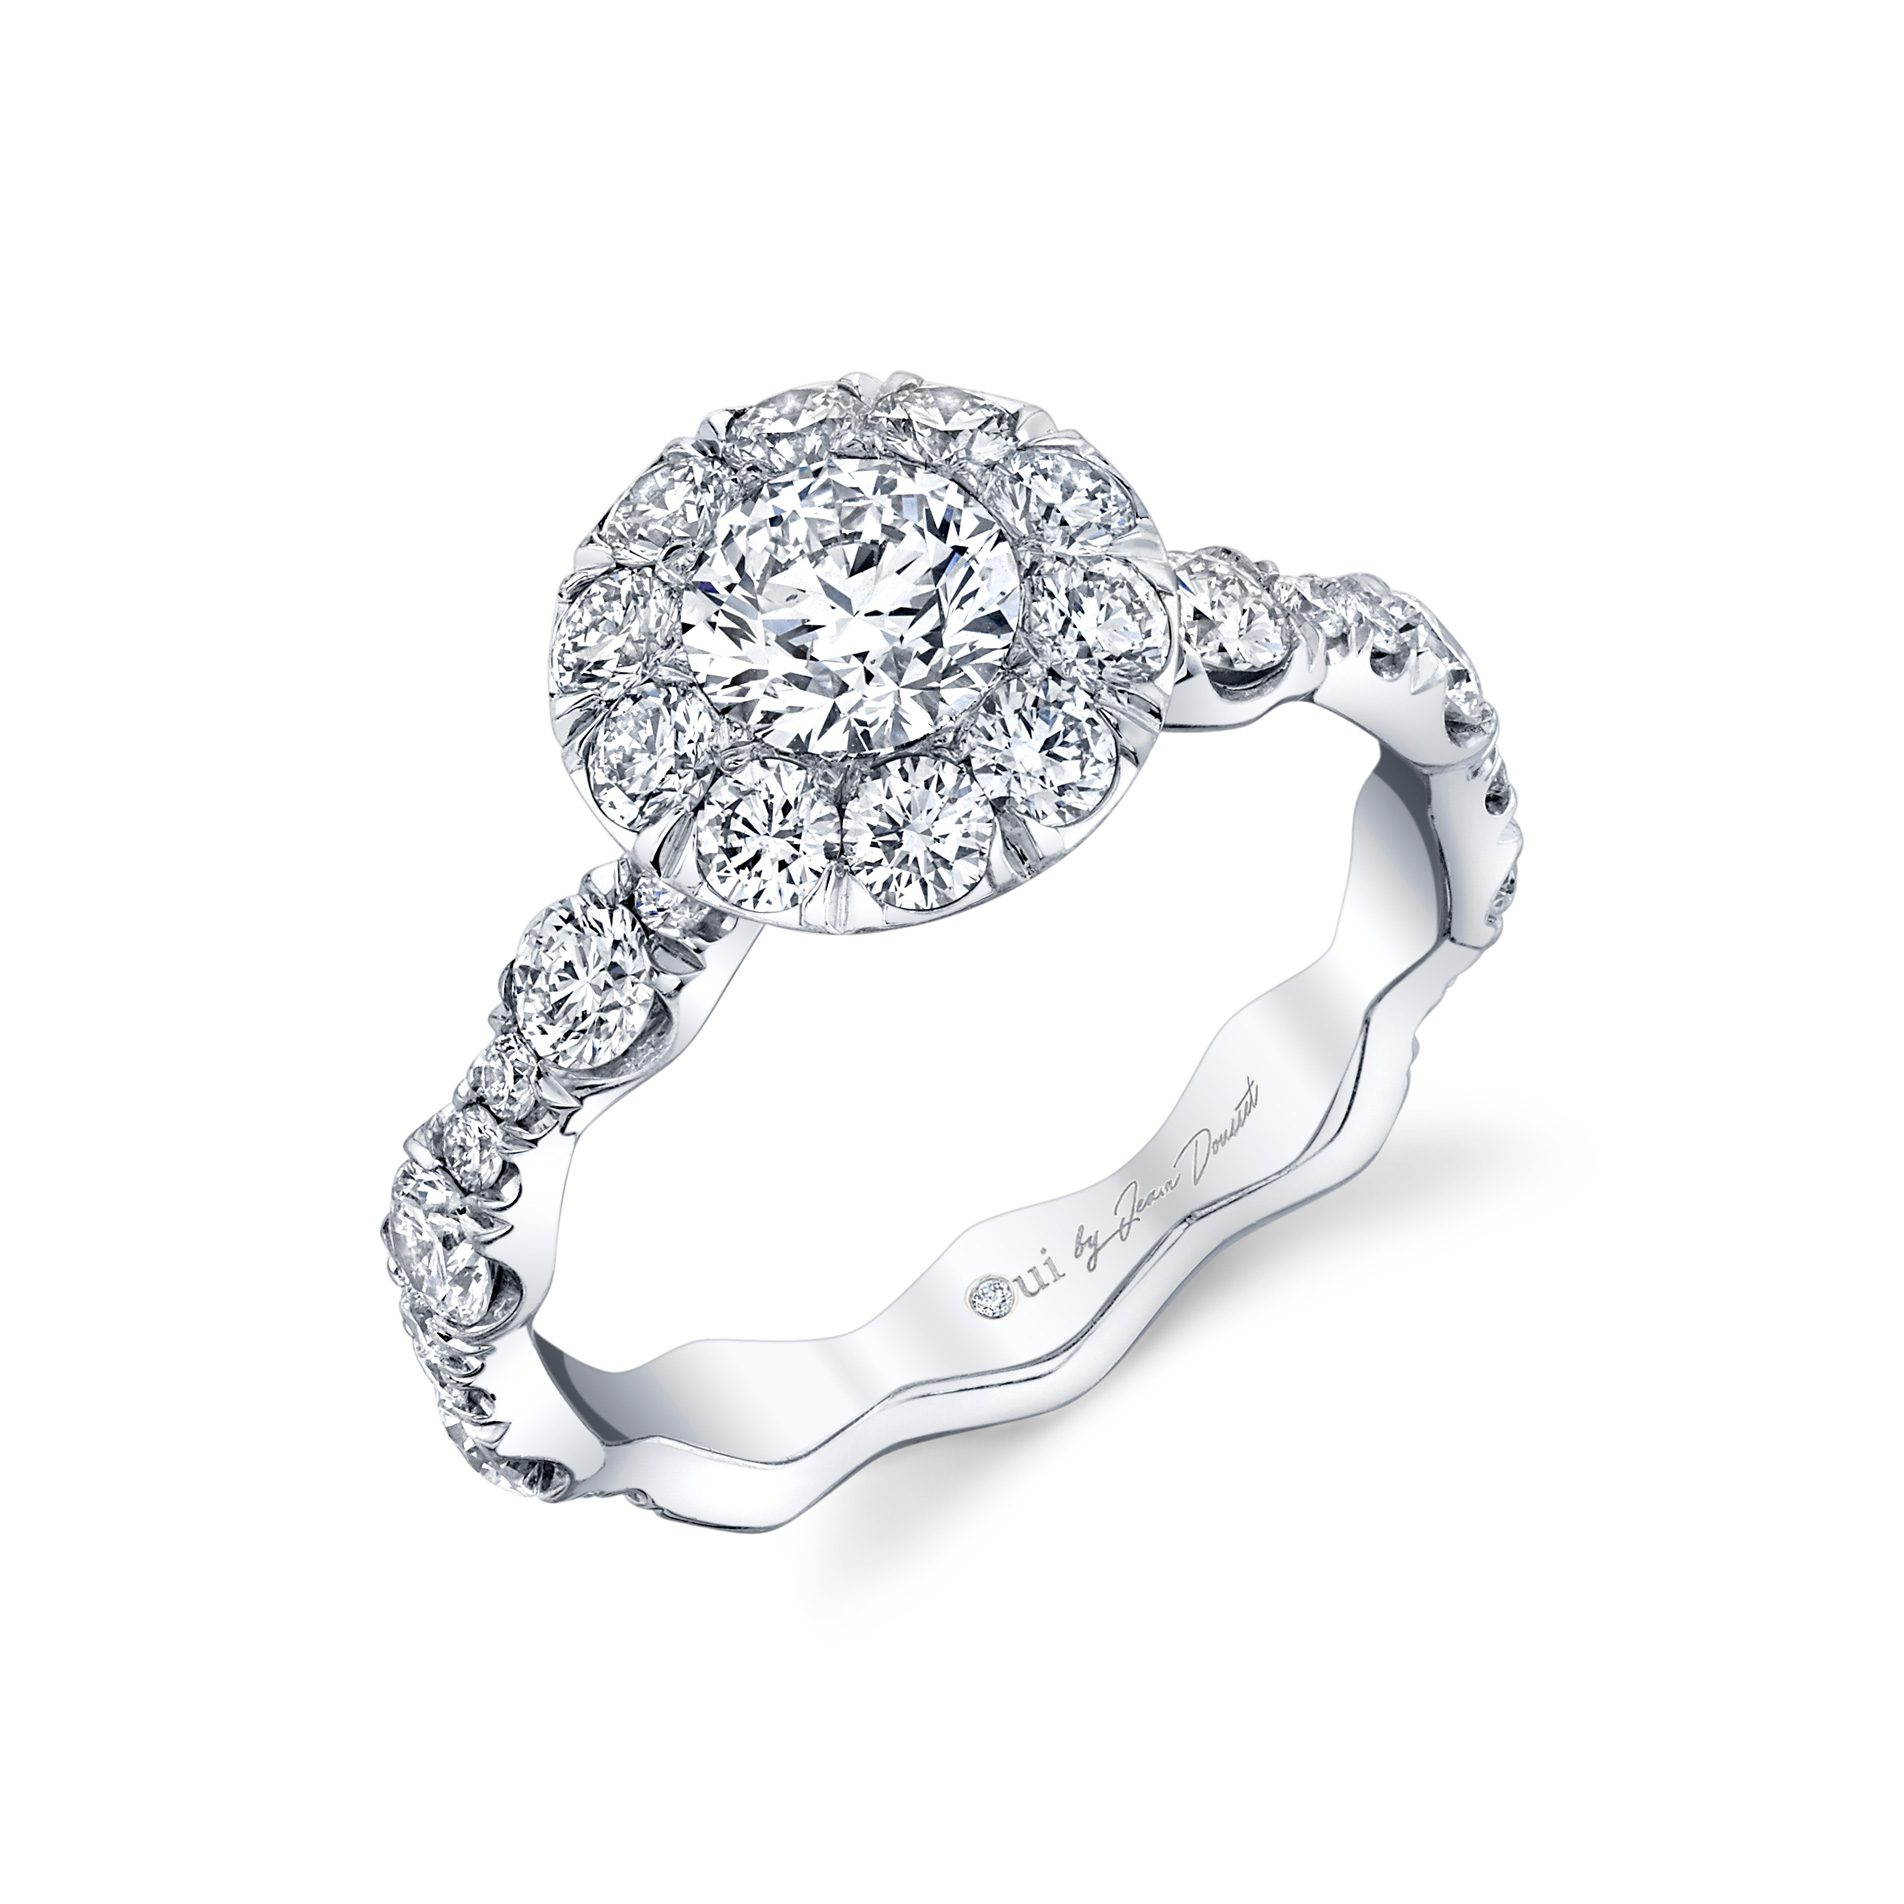 Yvonne Floating Round Brilliant Seamless Solitaire® Engagement Ring 18k White Gold Profile View by Oui by Jean Dousset